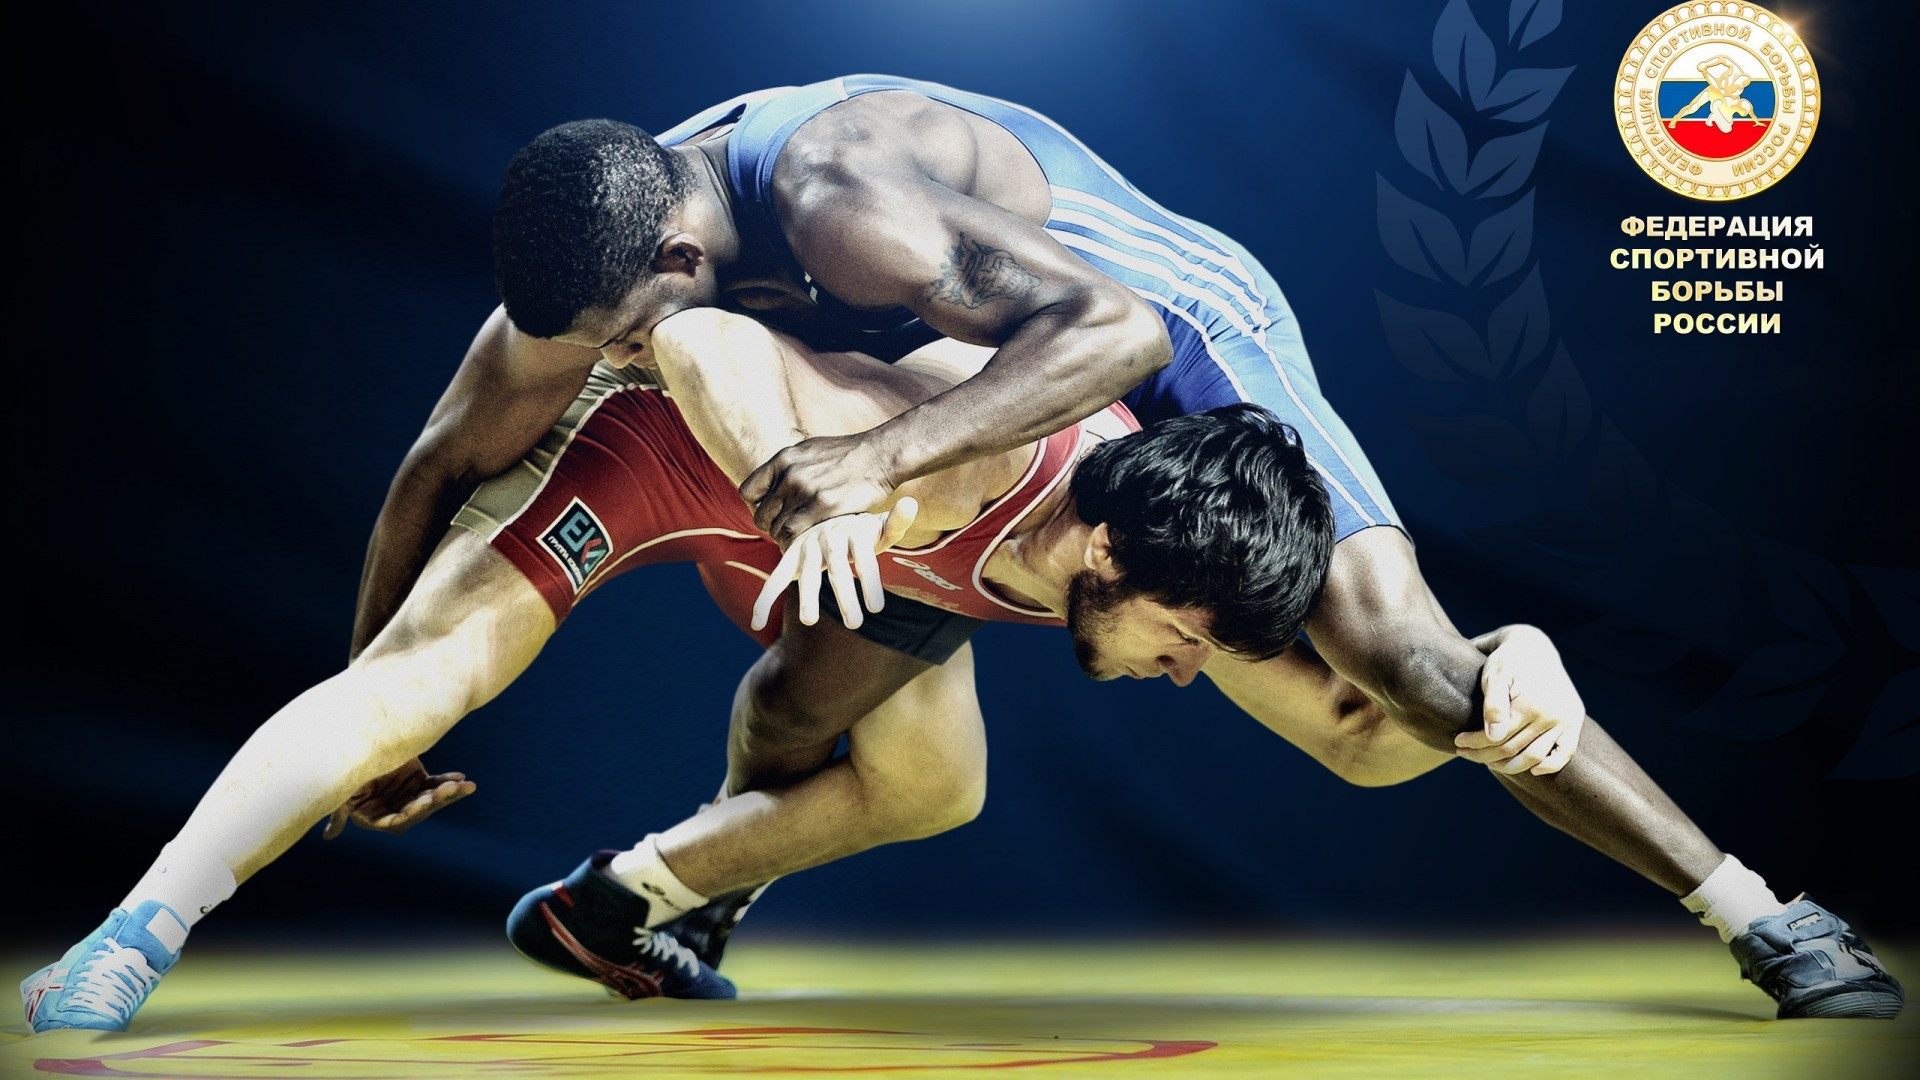 1920x1080 Greco Roman wrestling wallpapers and images - wallpapers, pictures .